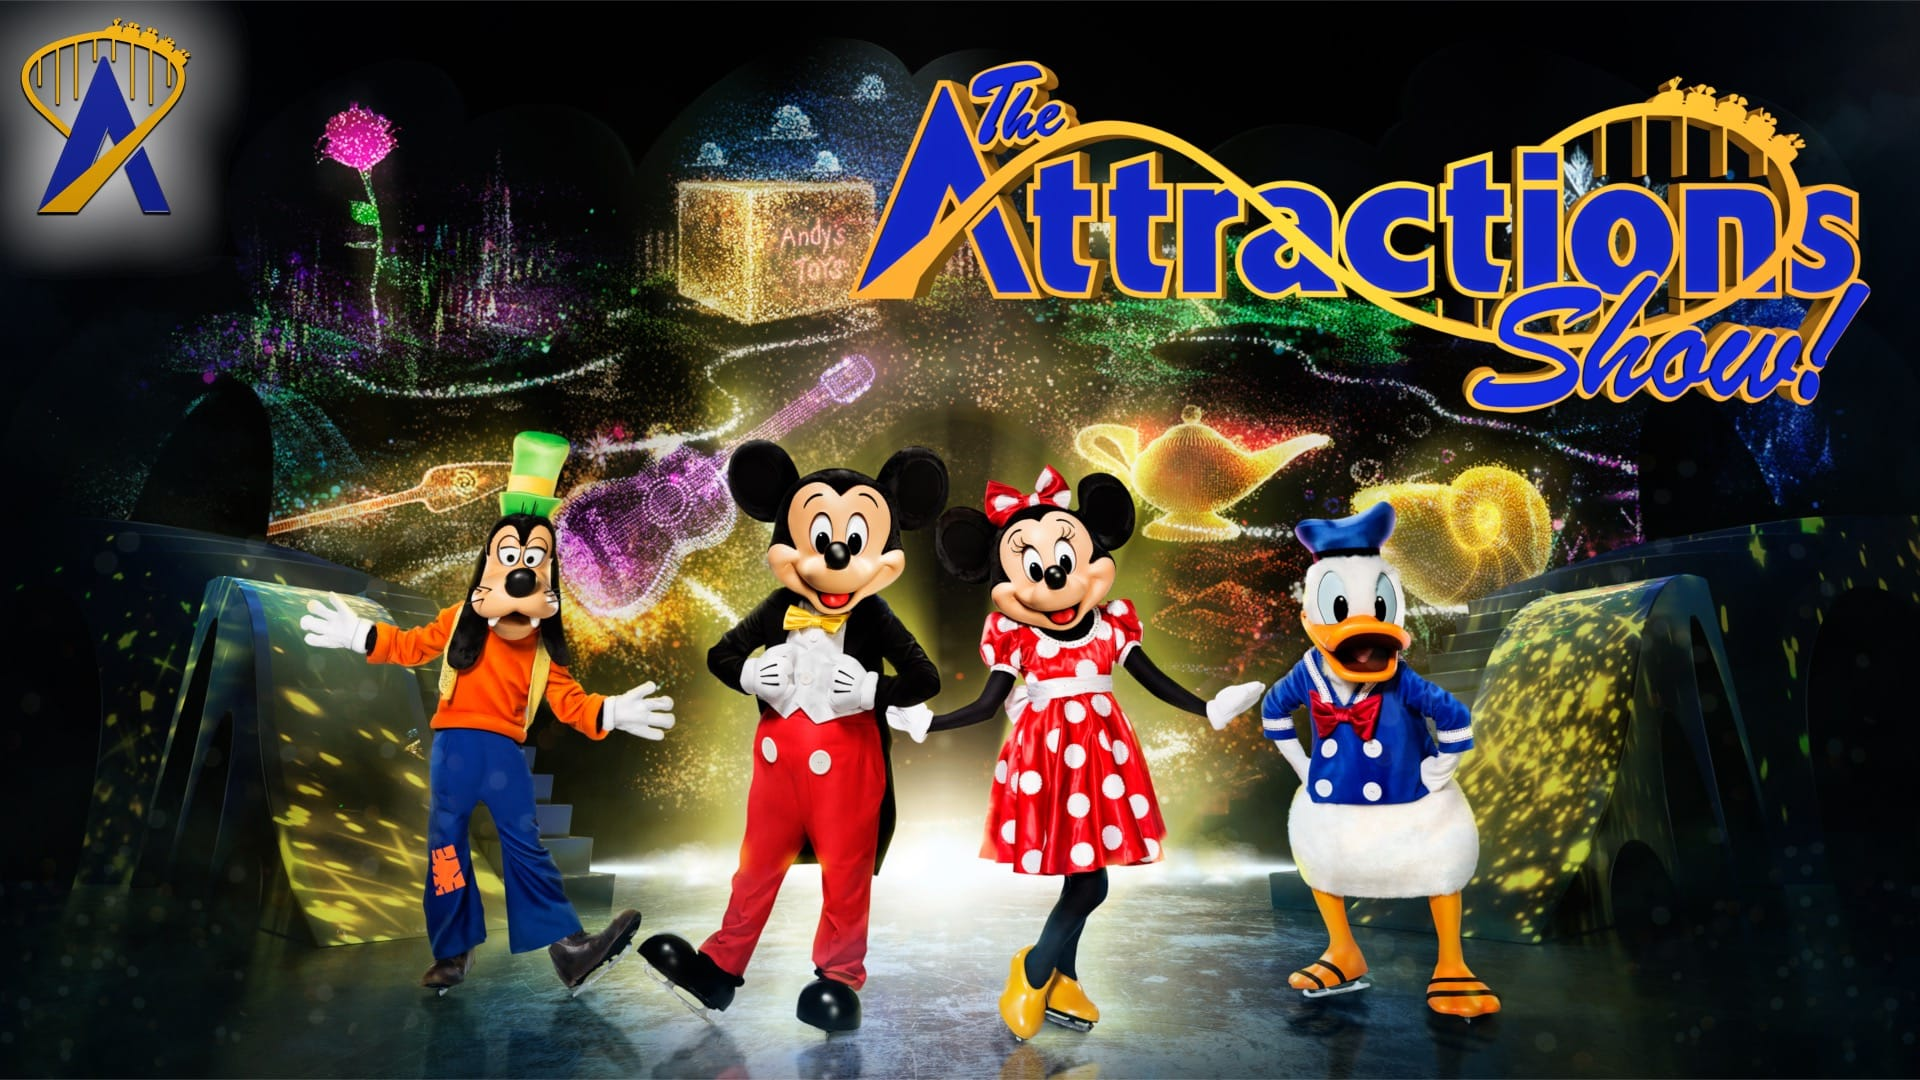 Disney On Ice Orlando Giveaway. One lucky winner will receive a family four-pack of tickets to the Orlando show. Winner will have the choice of either Friday, September 7, at pm or Saturday September 8, at 11 am.